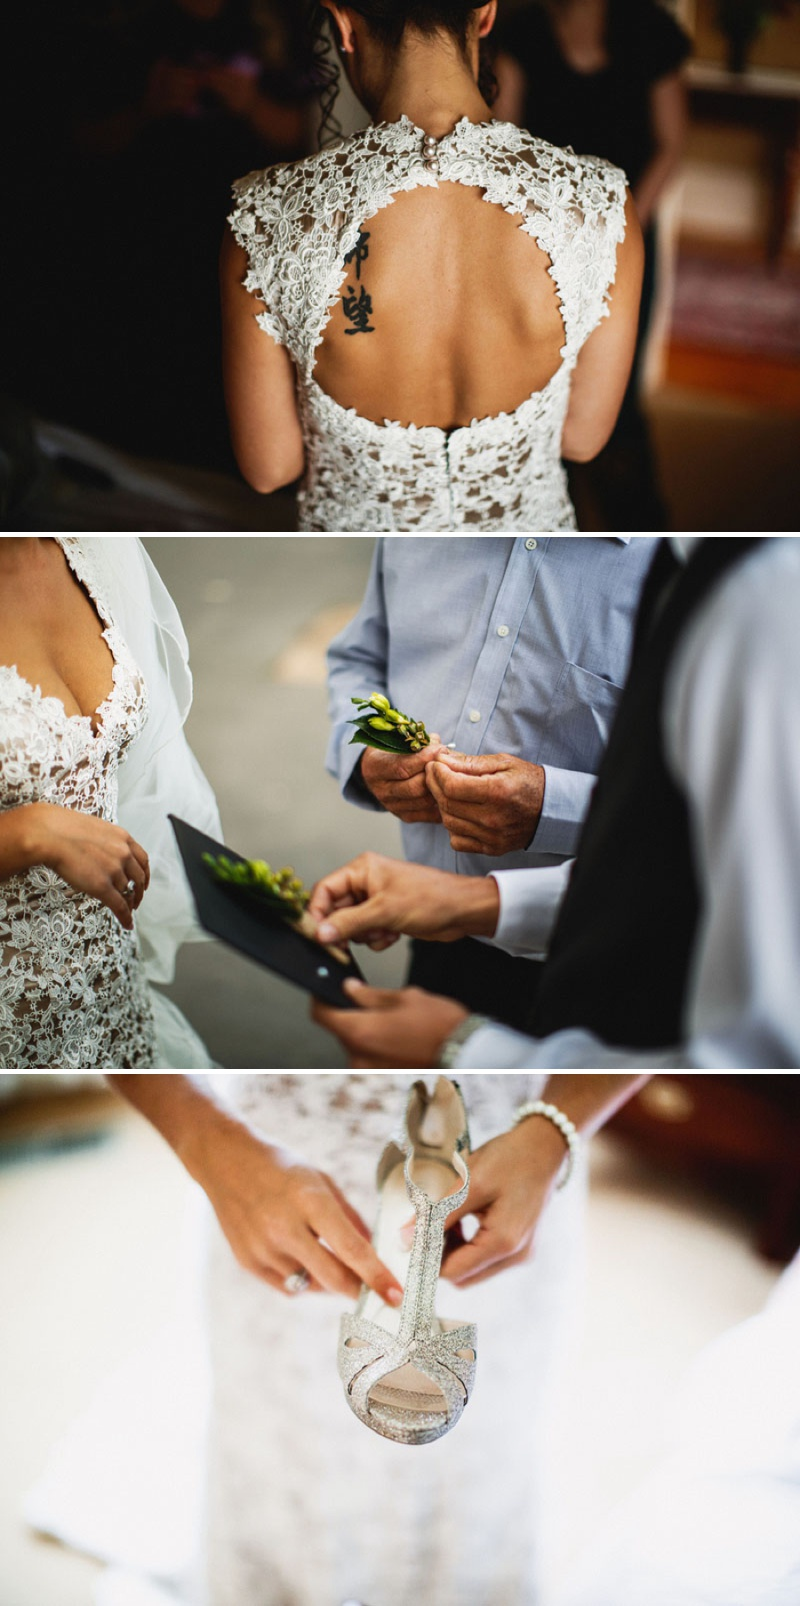 Intricate Lace Back Wedding Dress with Sparkly T-bar Shoes